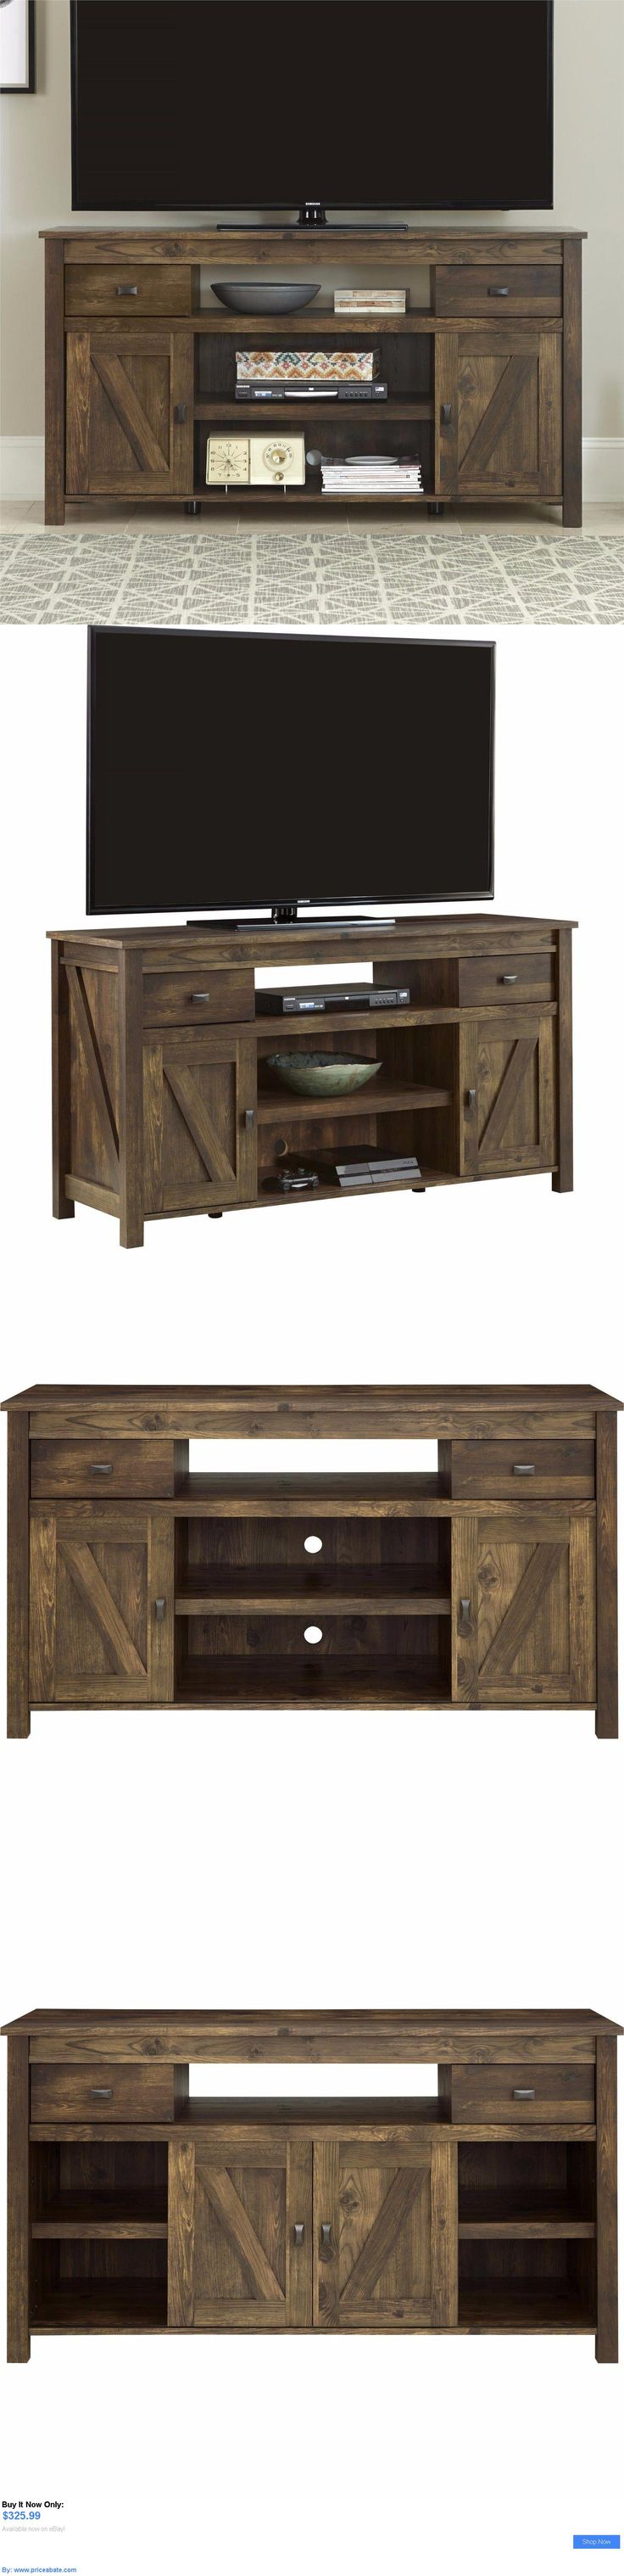 Entertainment Units, TV Stands: Rustic Tv Stand Entertainment Center Media Console Table Wood Farmhouse Barn BUY IT NOW ONLY: $325.99 #priceabateEntertainmentUnitsTVStands OR #priceabate